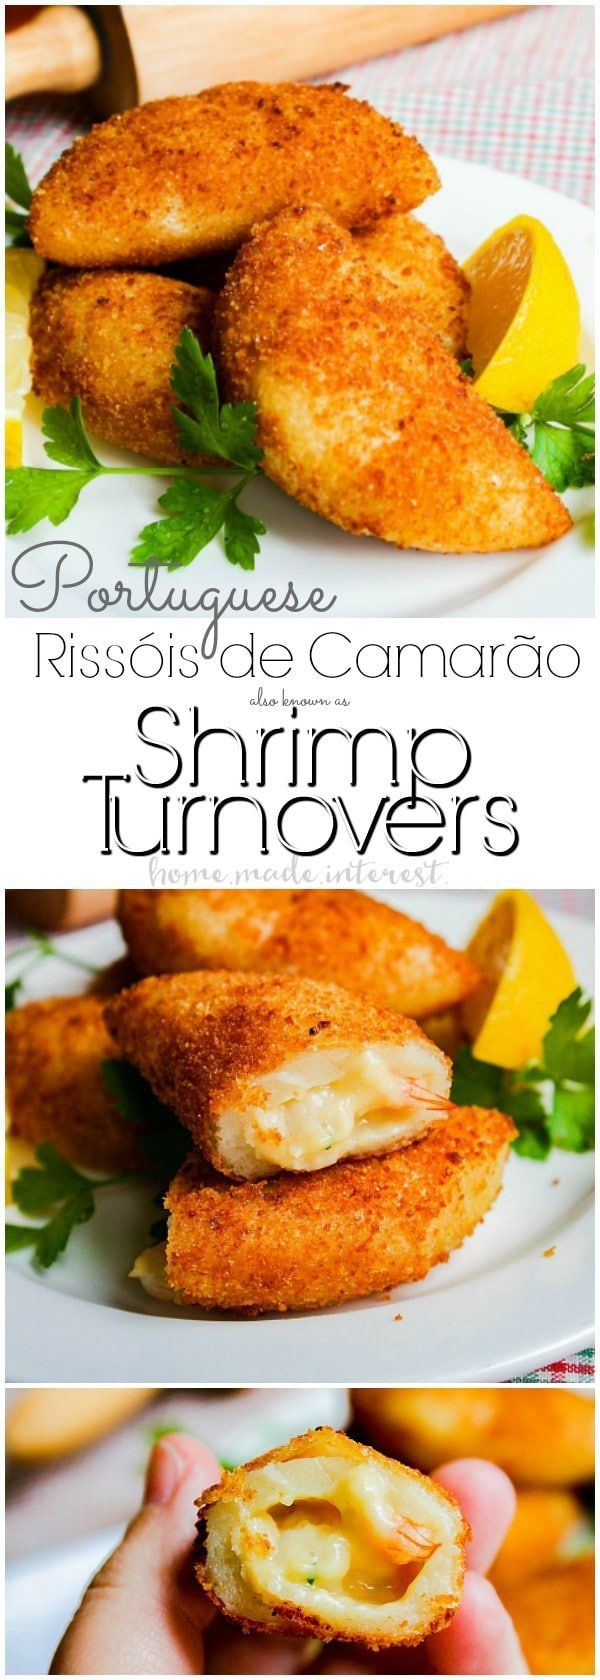 Portuguese Shrimp Turnovers | My favorite appetizer for parties and celebrations are these Portuguese Shrimp Turnovers or Rissóis de Camarão. These shrimp dumplings are the ultimate Portuguese tradition and you'll find them at every party and big event. This Shrimp turnover recipe is one of the best party appetizer recipes you will ever try. These shrimp dumplings are a make ahead appetizer recipe and they made a great seafood recipe for Lent!